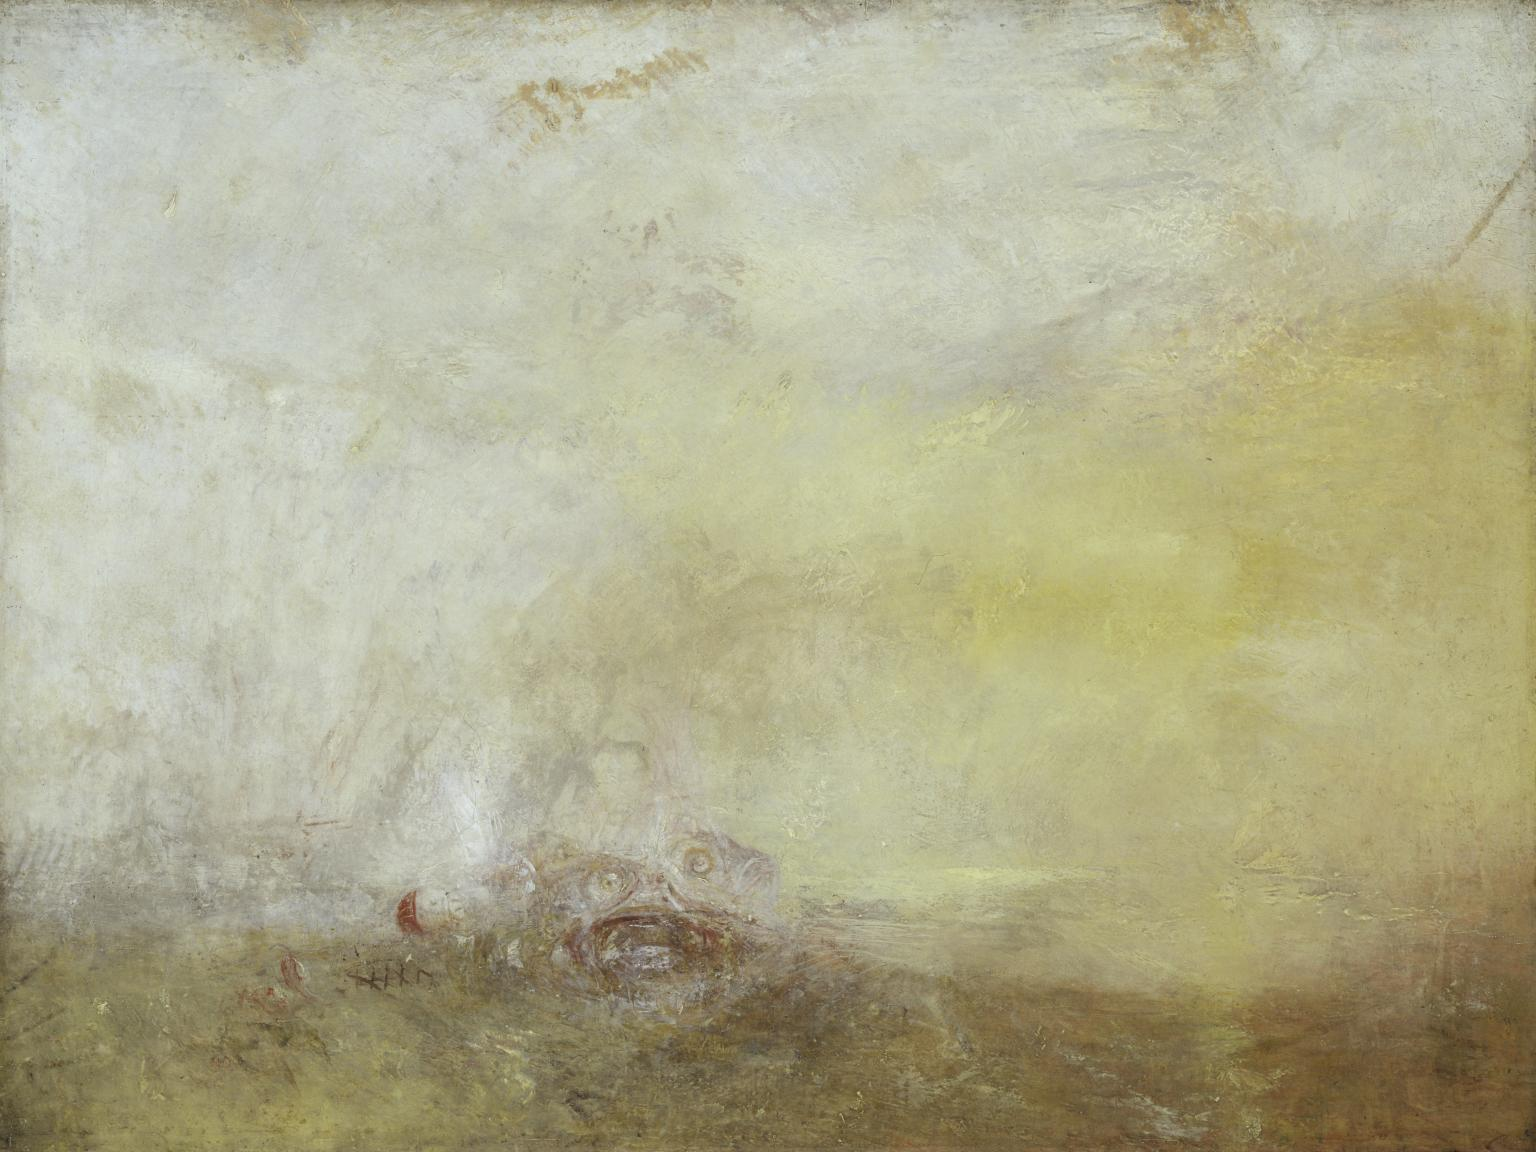 William Turner, Sunrise with Sea Monsters, 1845.